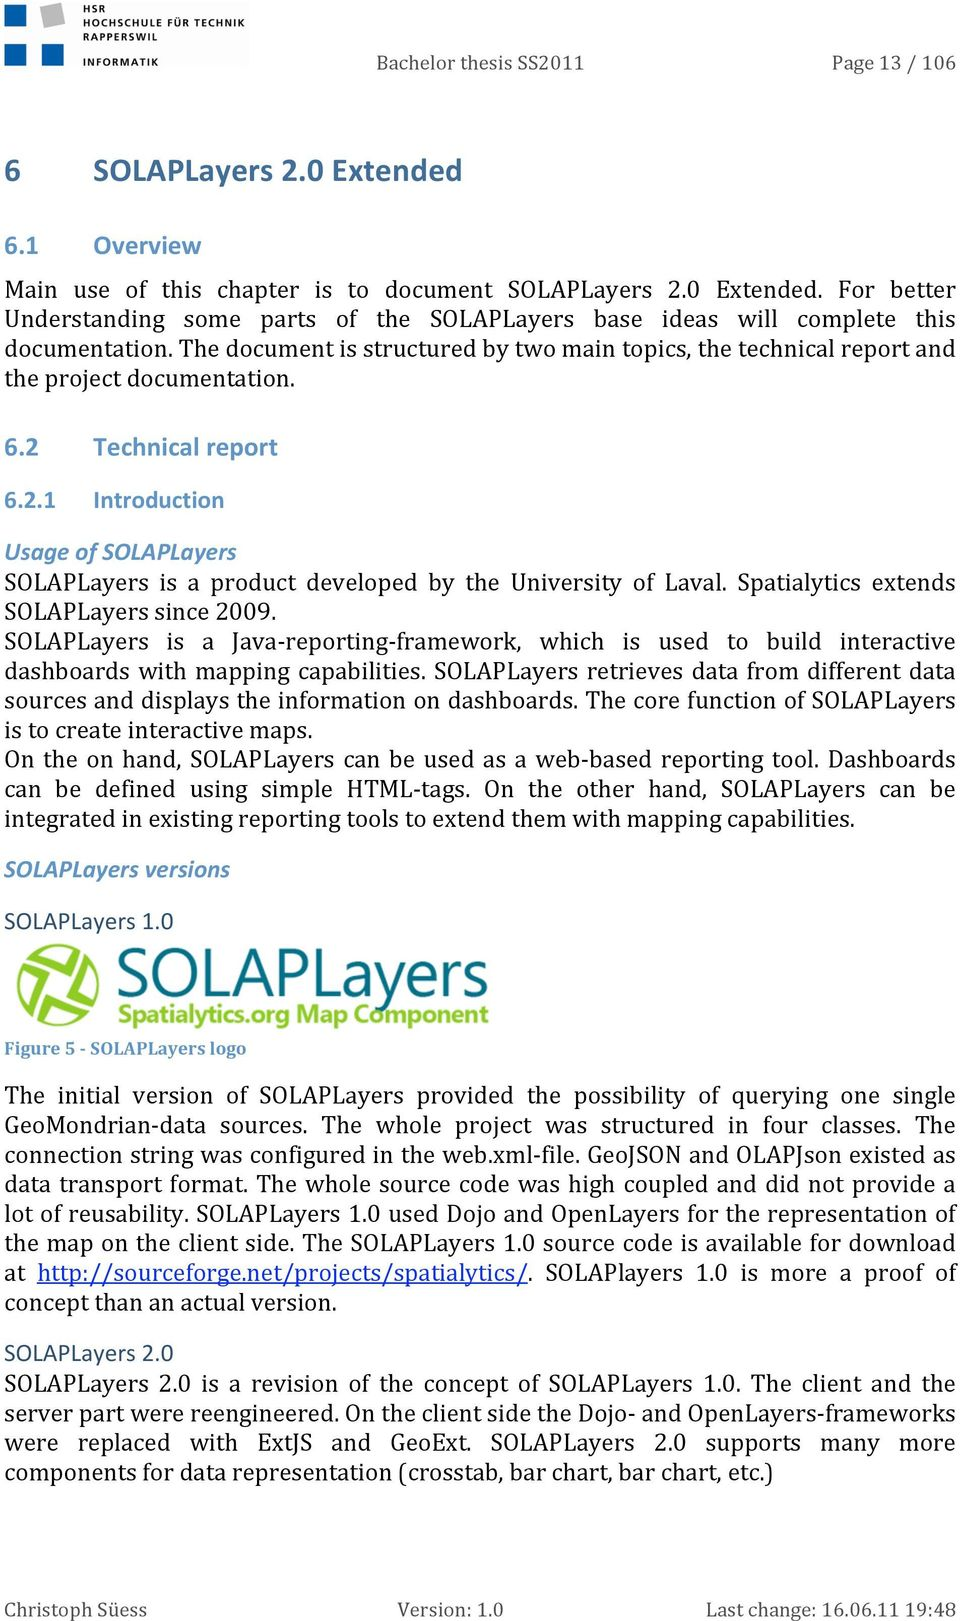 2 Technicalreport 6.2.1 Introduction UsageofSOLAPLayers SOLAPLayers is a product developed by the University of Laval. Spatialytics extends SOLAPLayerssince2009.